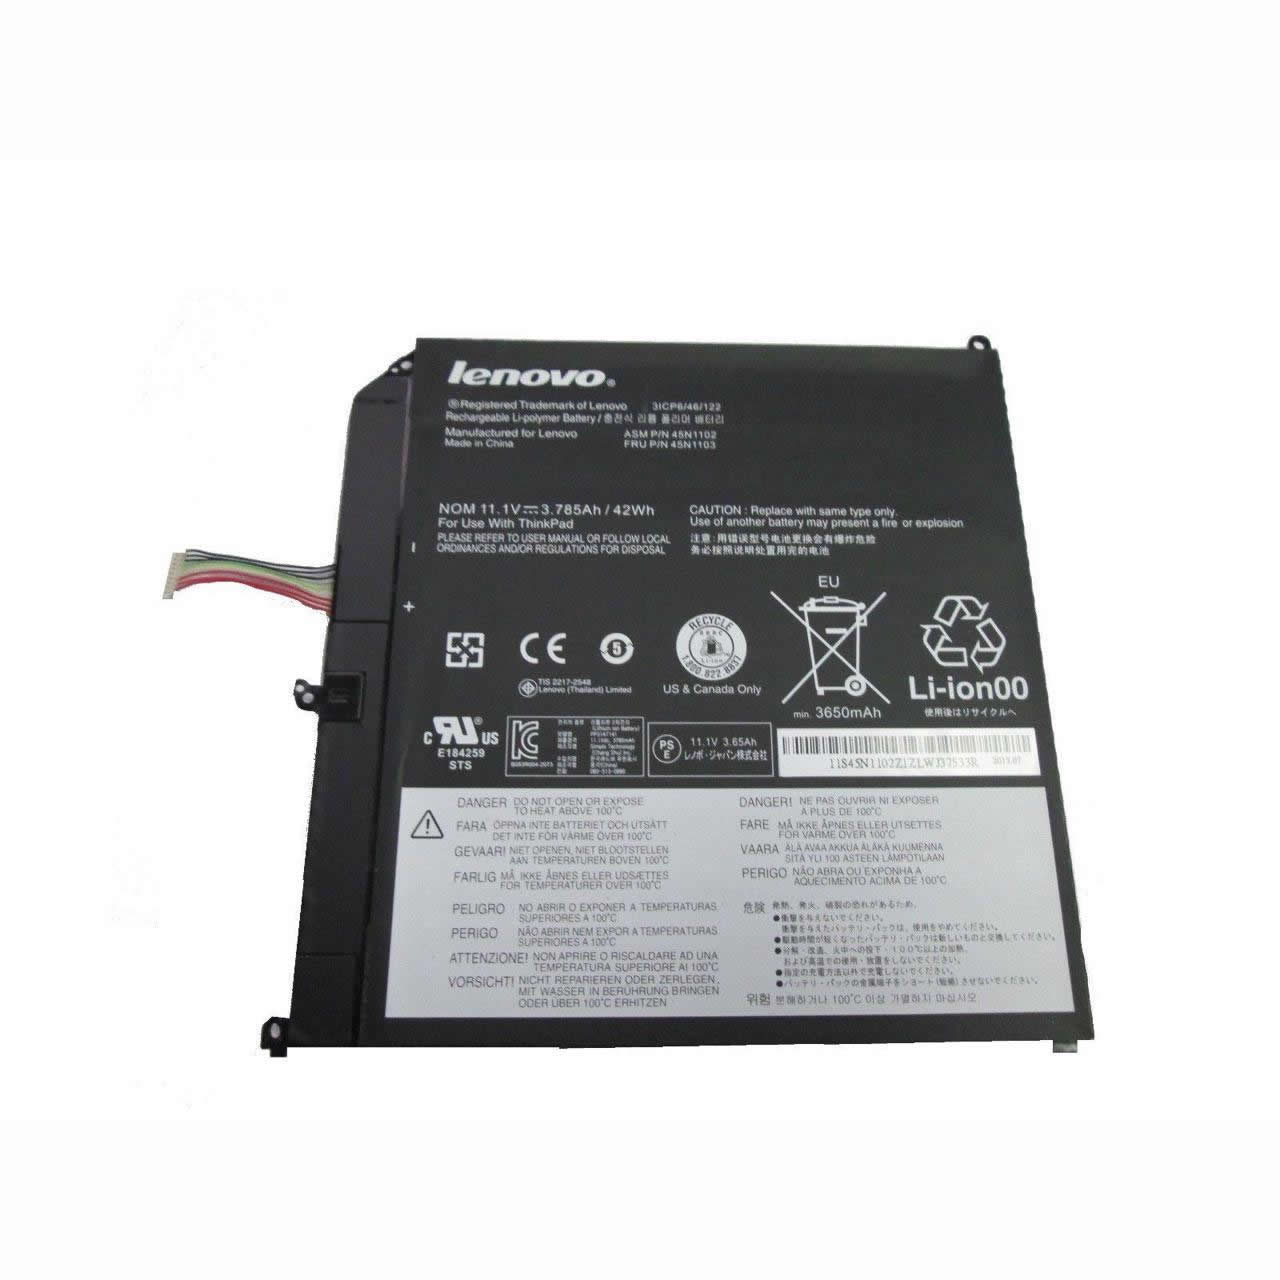 Batterie originale Lenovo 42T4966 7.4V 25Wh, 3.25Ah pour ordinateur portable Lenovo THINKPAD Tablet 1 1838 10.1INséries